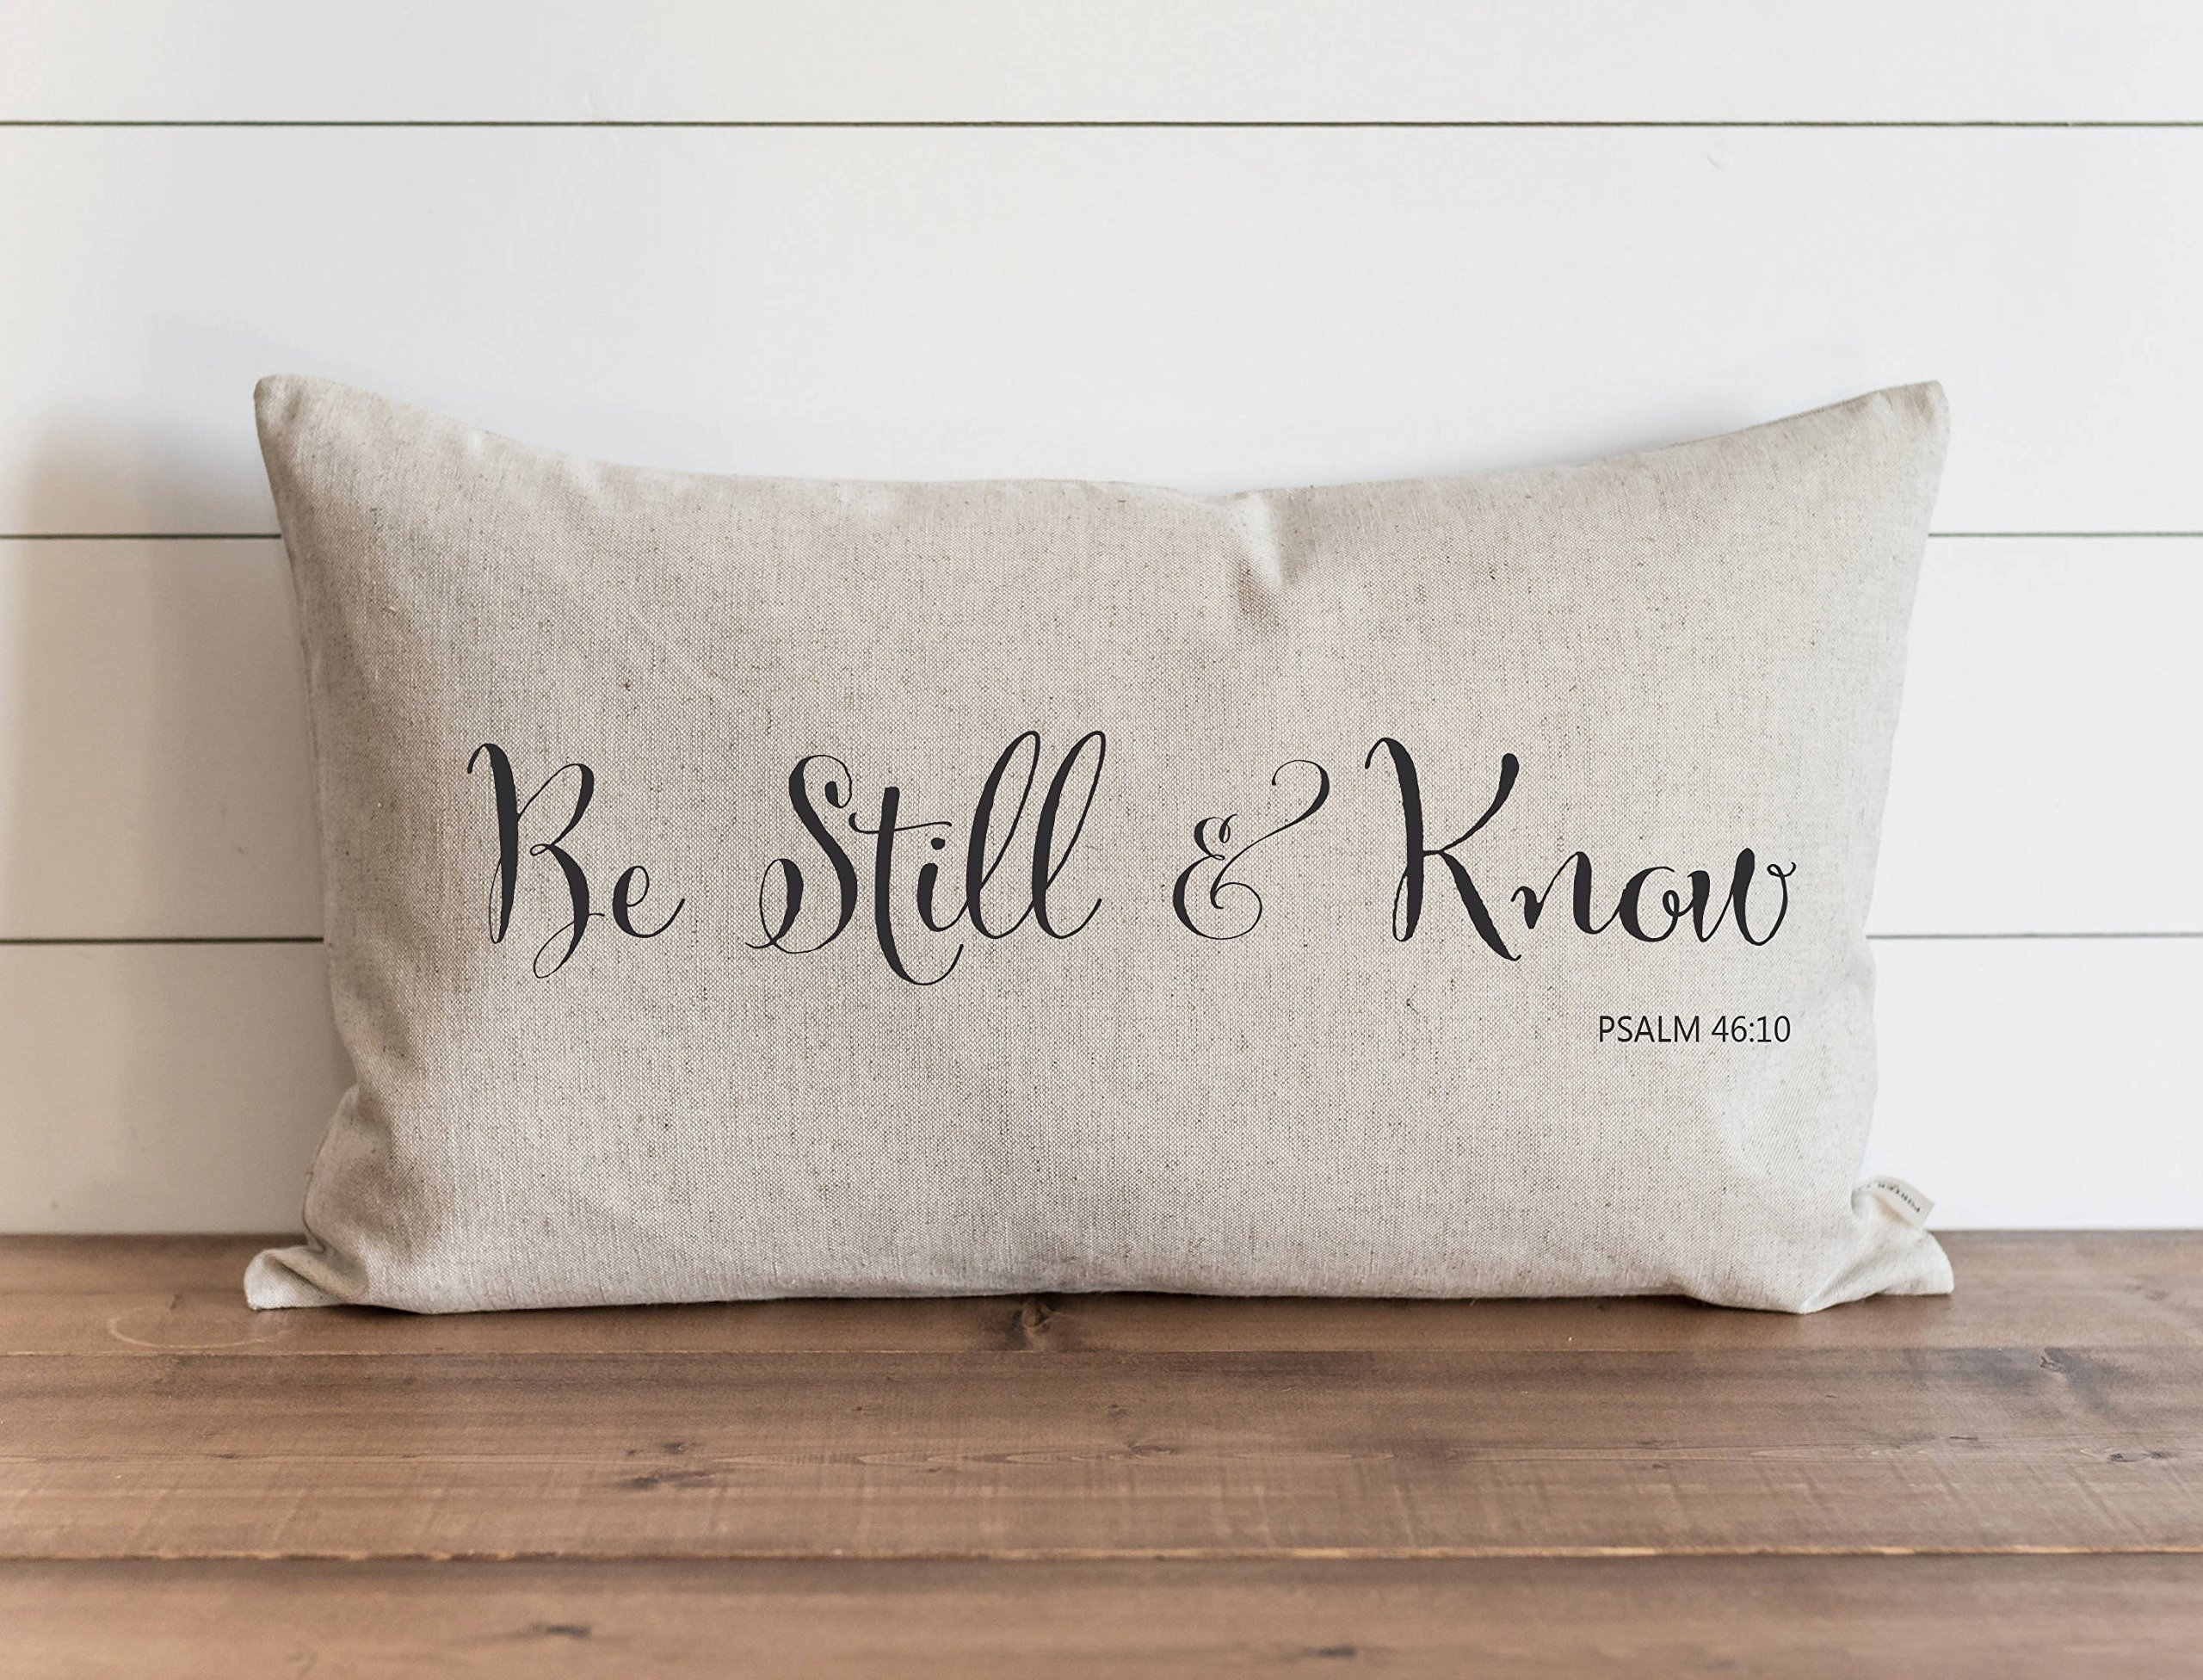 TINA-R Be Still Know 16 x 24 Inch Pillow Cover Everyday Throw Pillow Gift Accent Pillow Nursery Faith Psalm by TINA-R